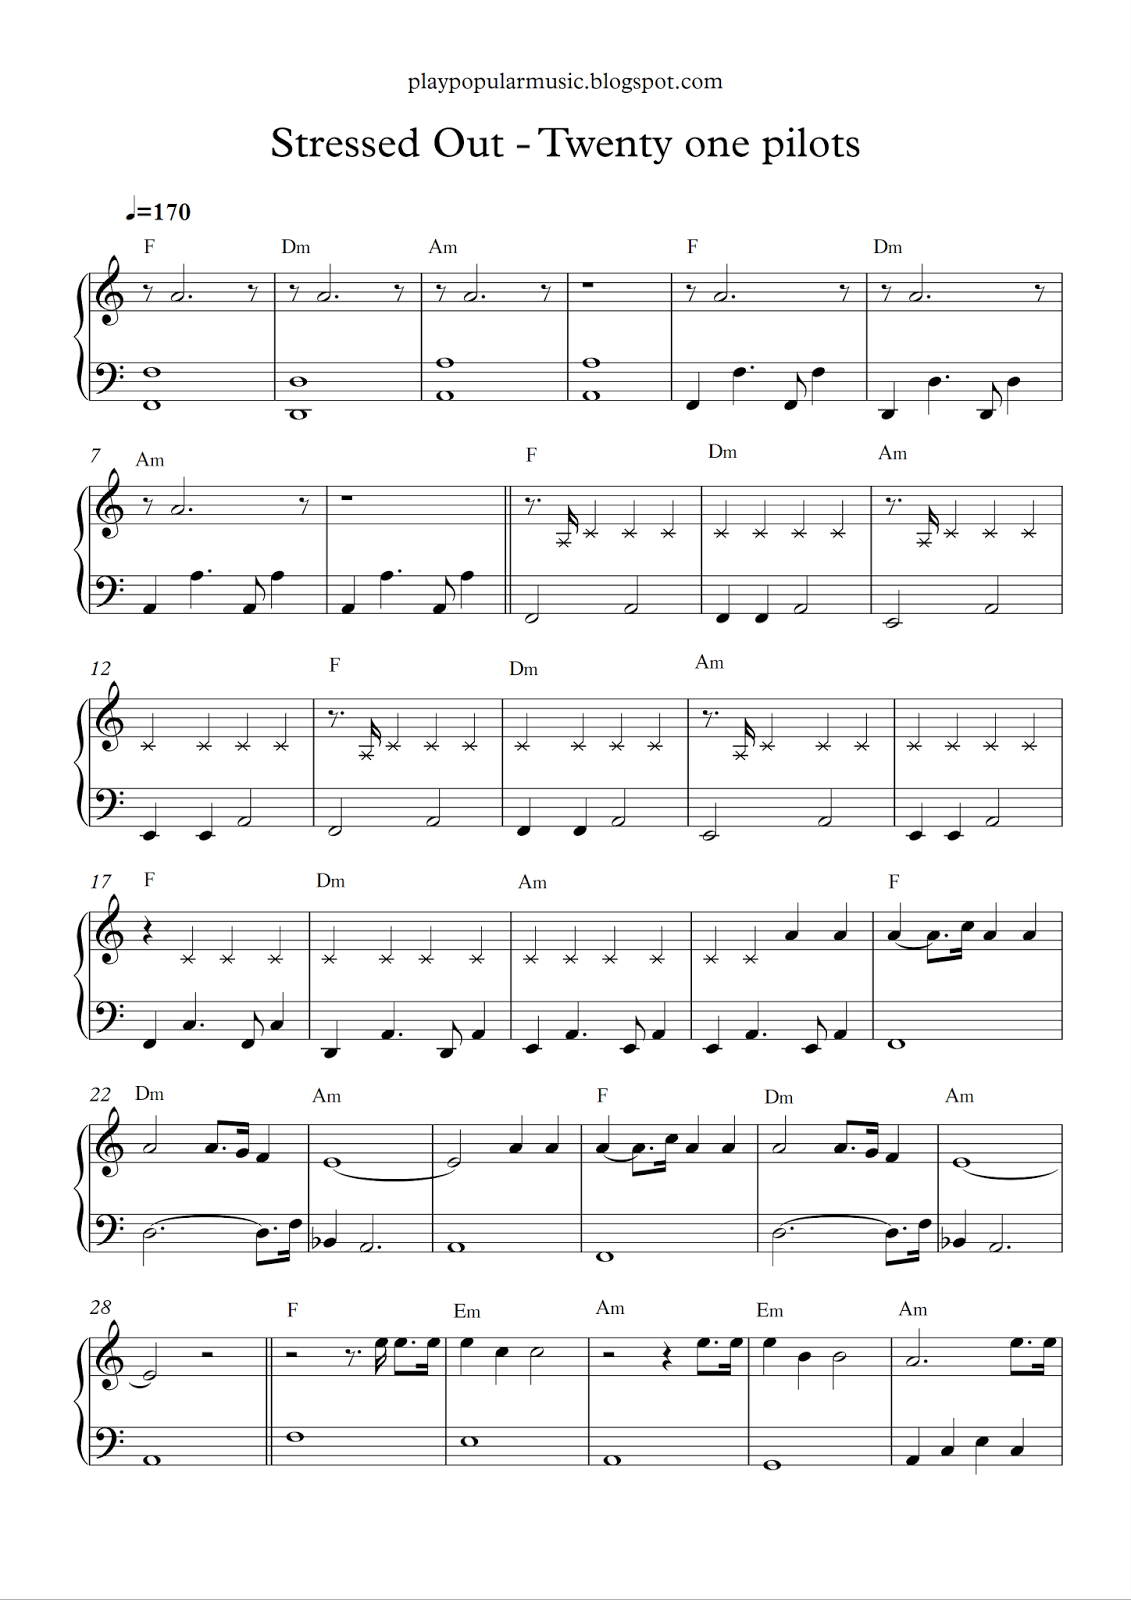 Free Piano Sheet Music Stressed Out Twenty One Pilots Pdf We Used To Play Pretend Give Ea Twenty One Pilots Songs Cello Sheet Music Twenty One Pilots